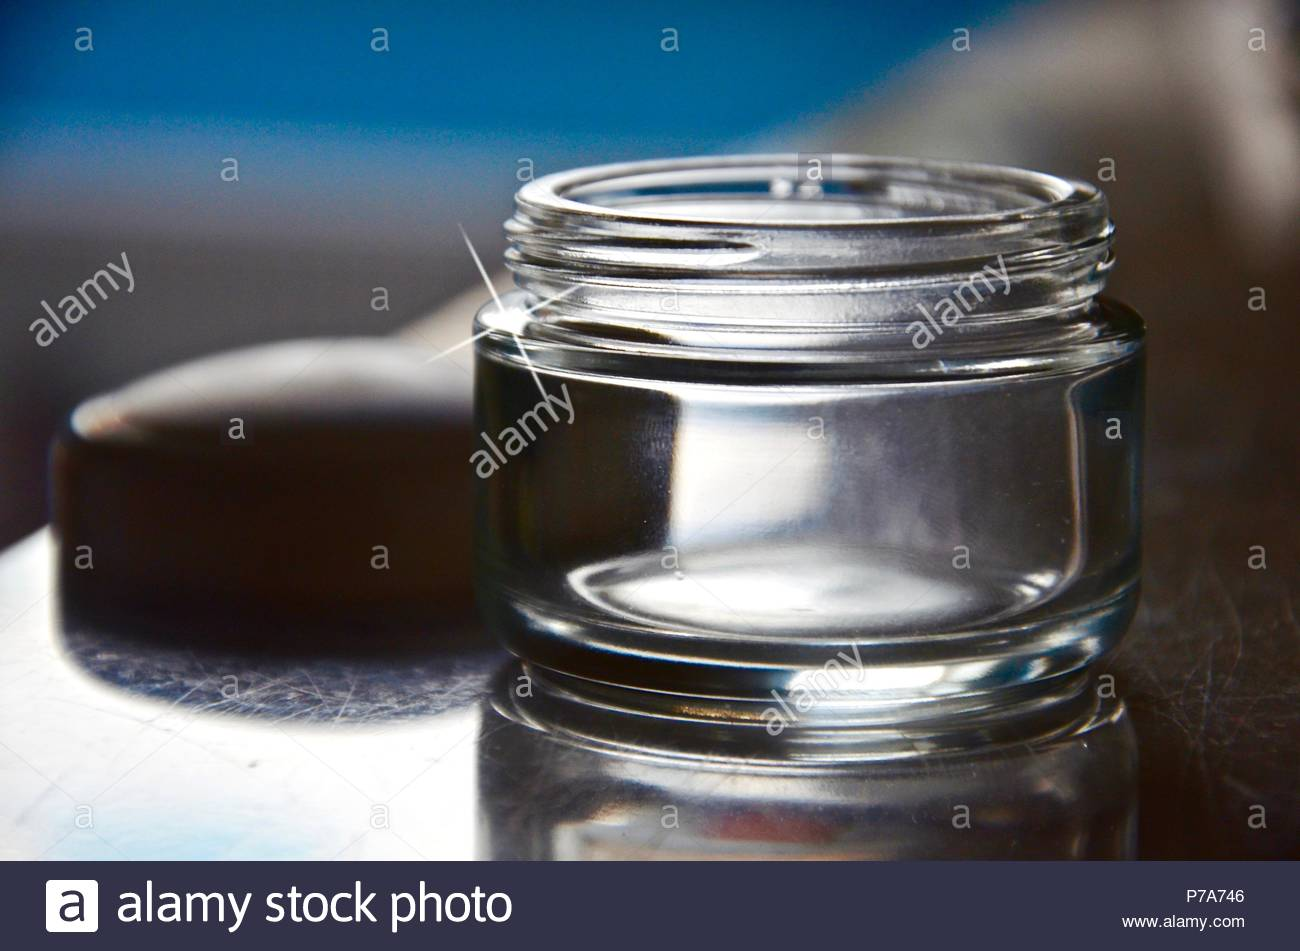 Empty face cream pot of glass with cover, blurred background, cosmetics, bright, industry, environment, blue, shiny, cosmetics industry, advertising - Stock Image